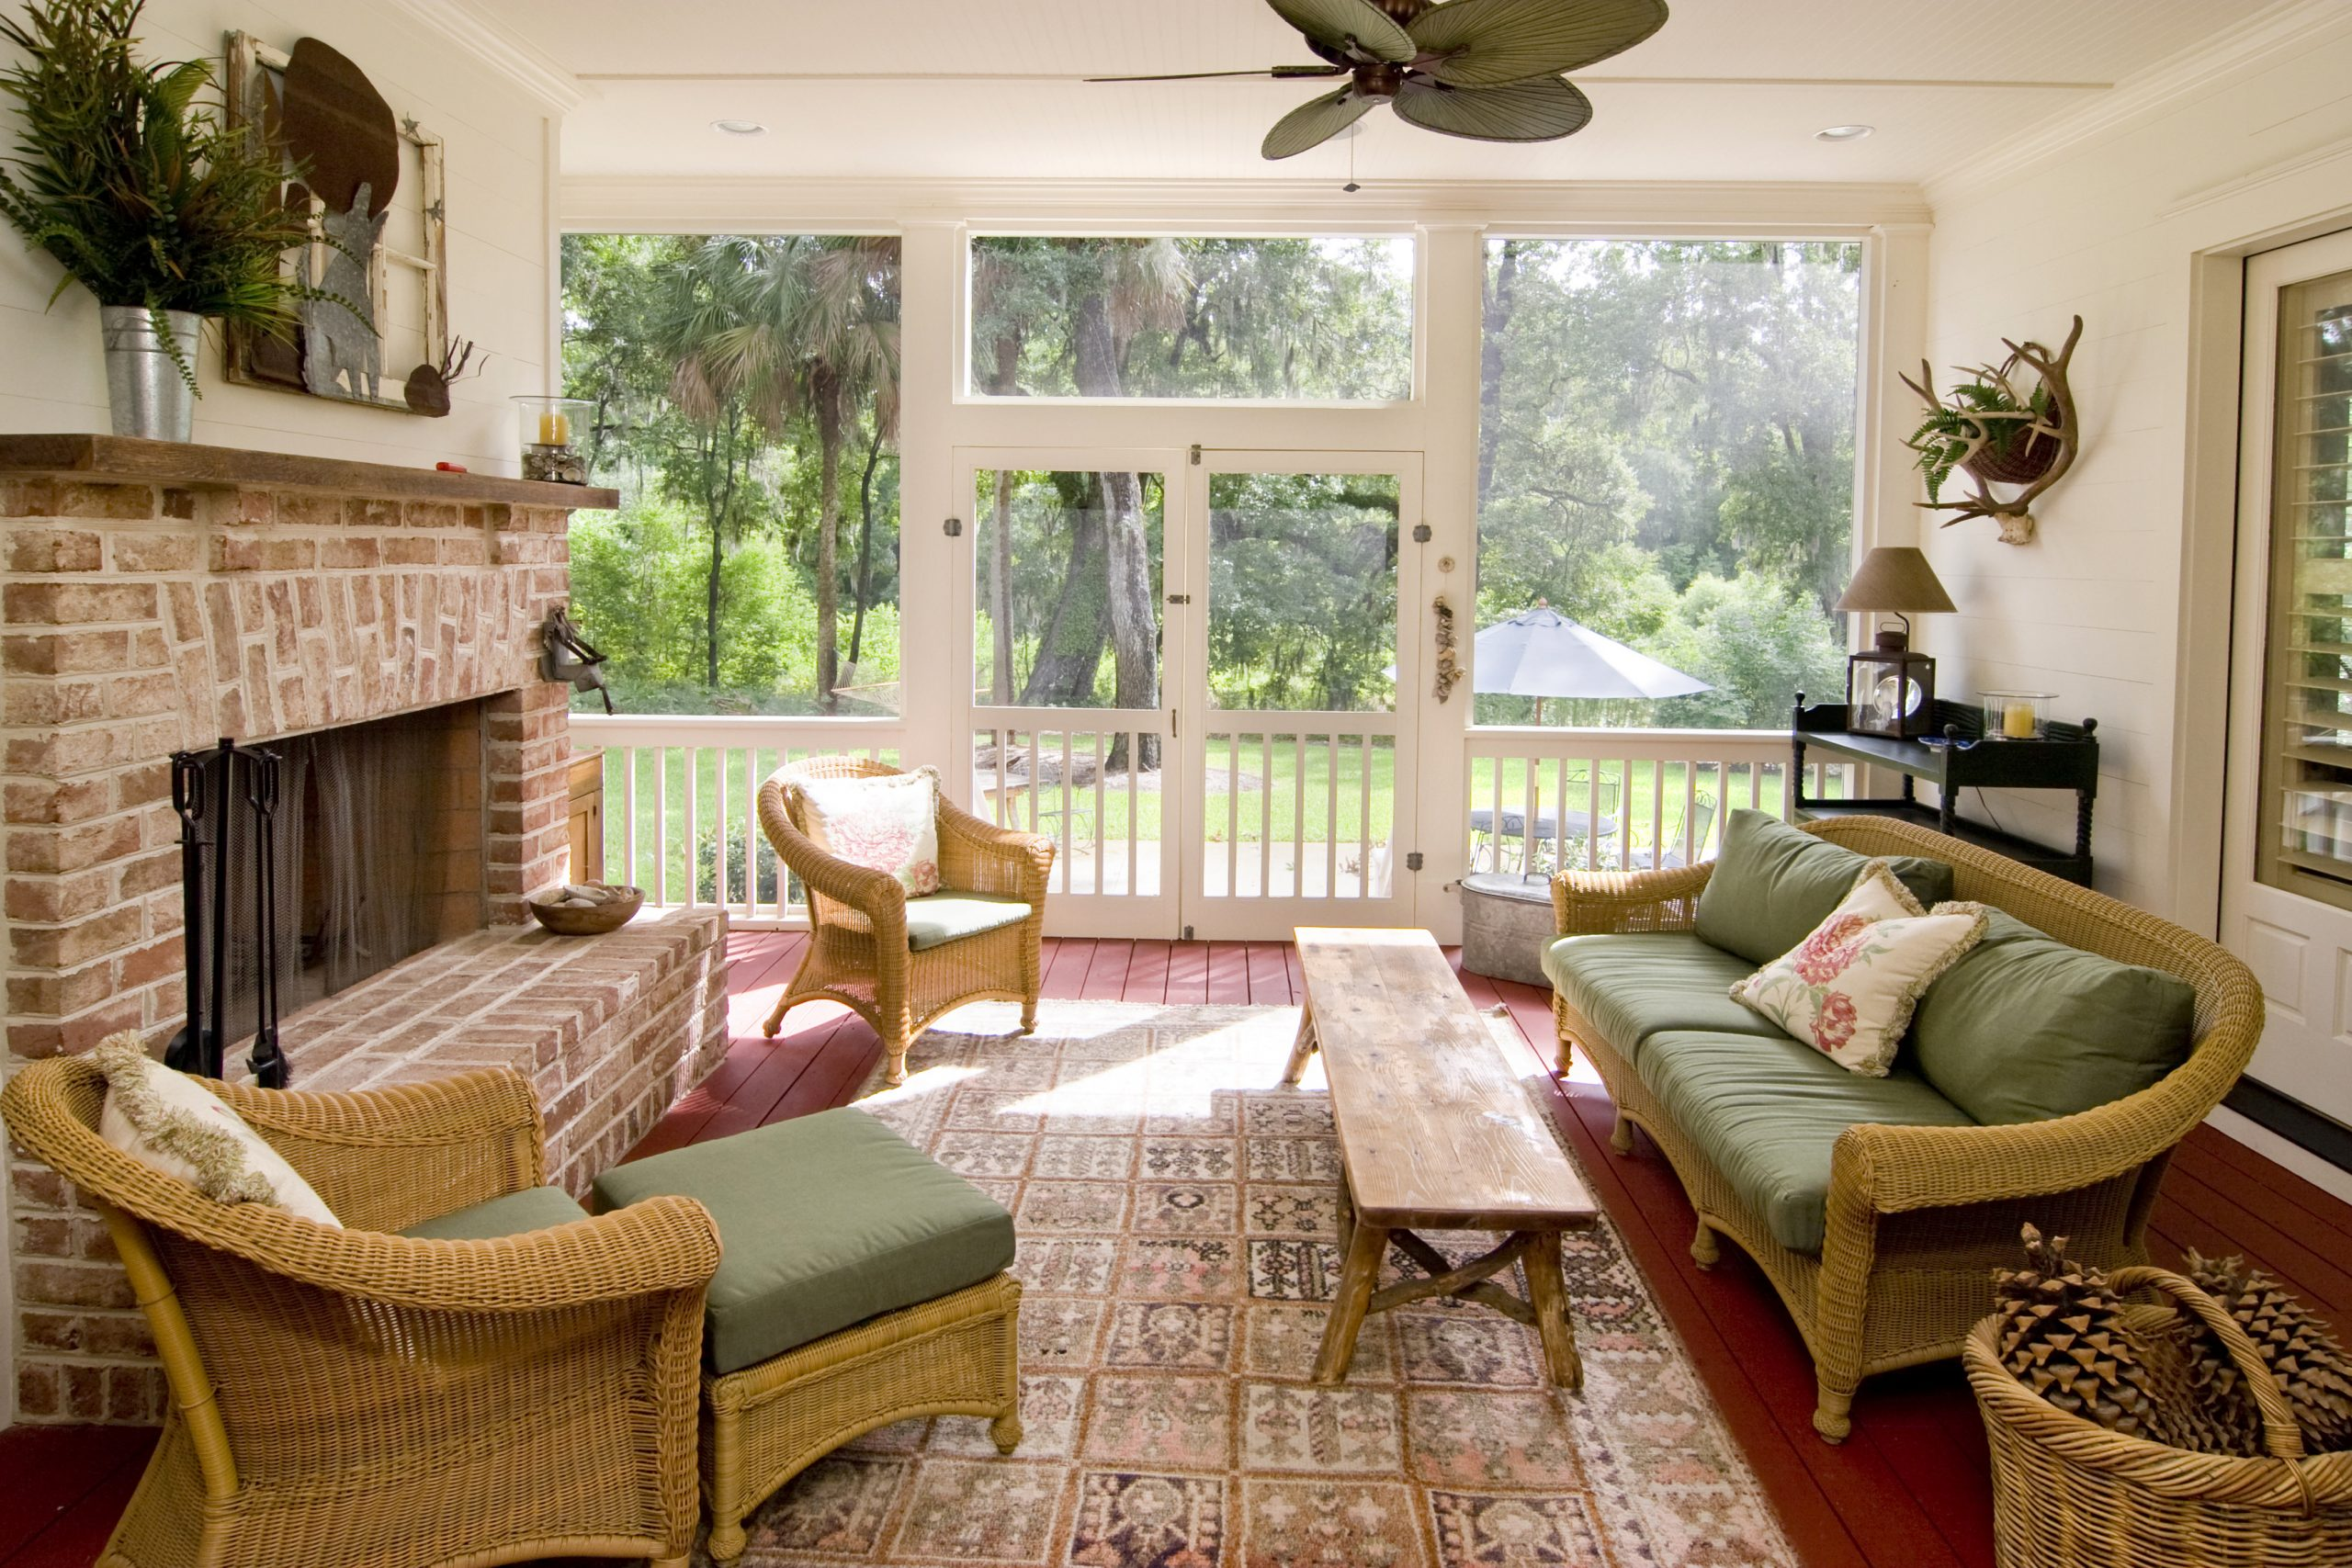 image - How to Build a Sunroom on Your House